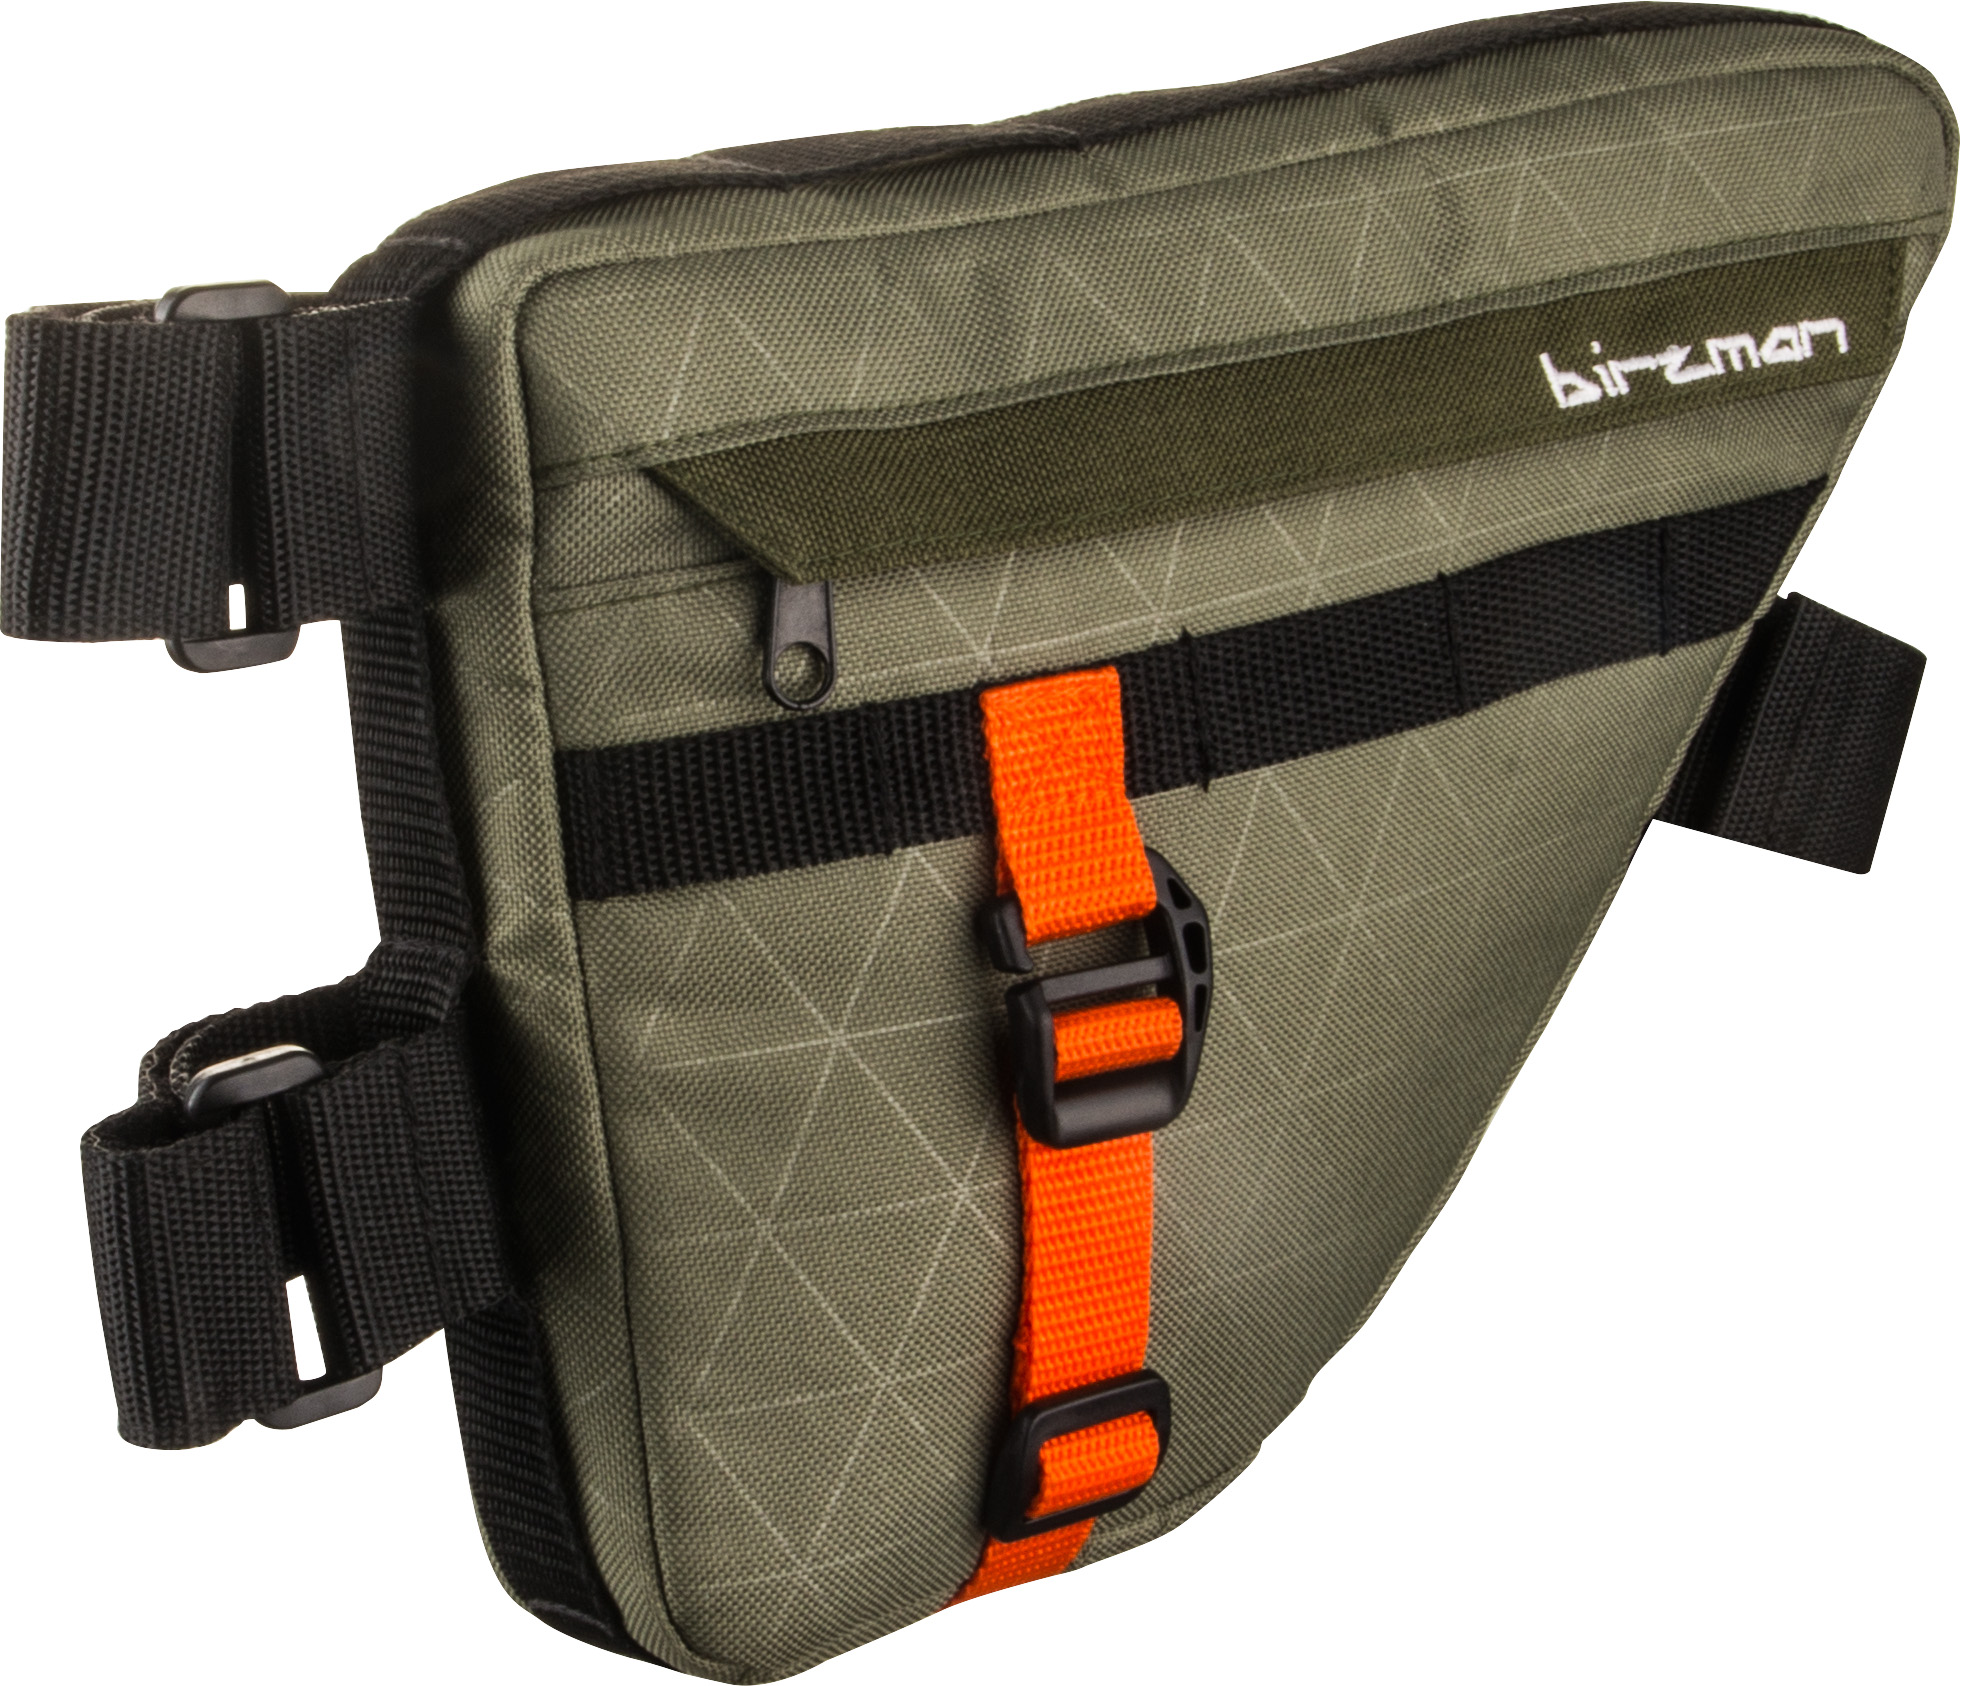 Birzman Packman Travel Frame Pack - Satellite | Frame bags